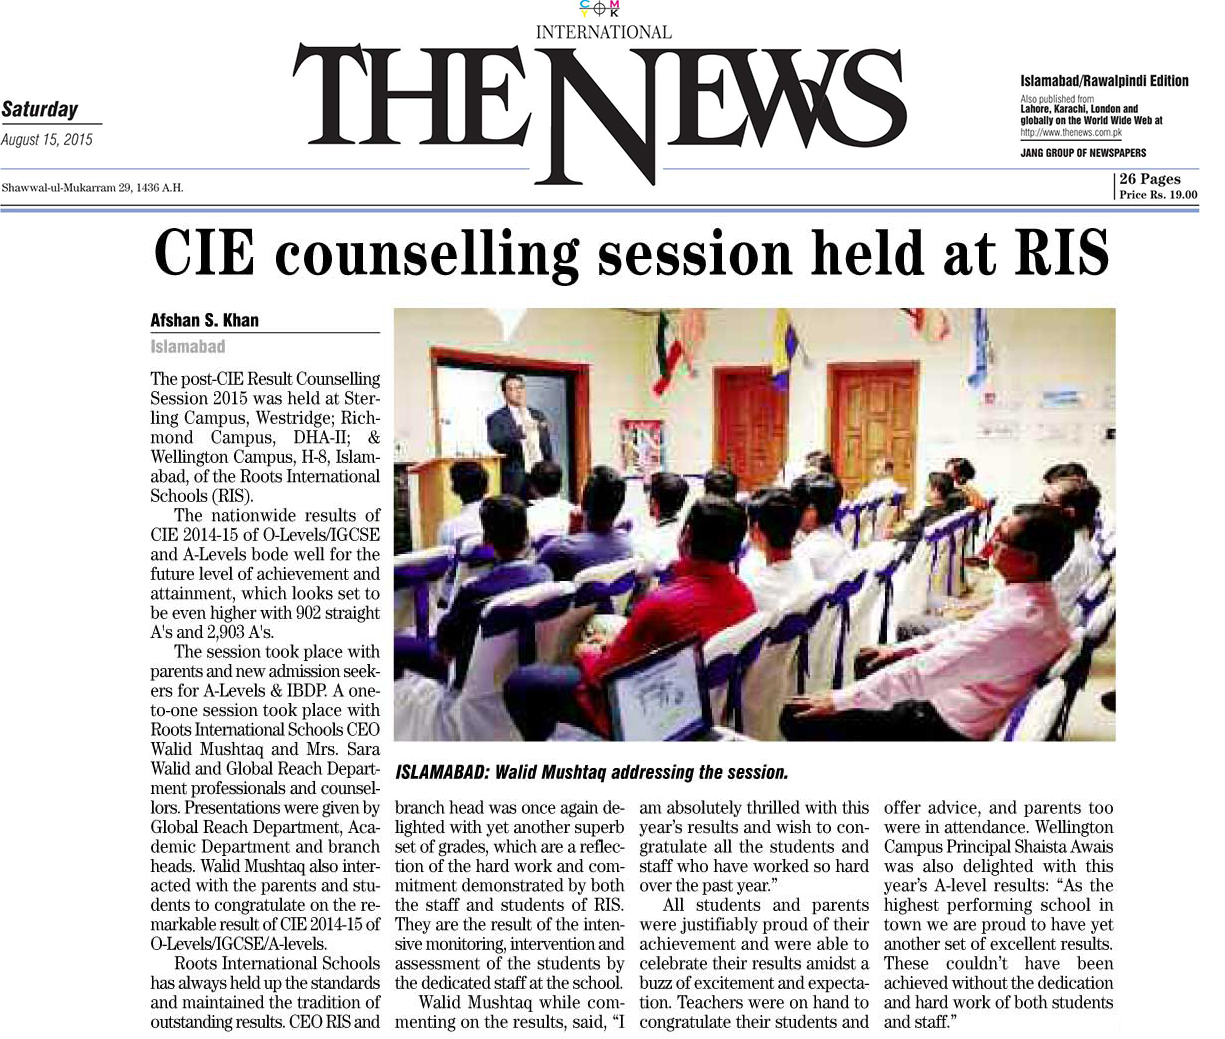 CIE counselling session held at RIS